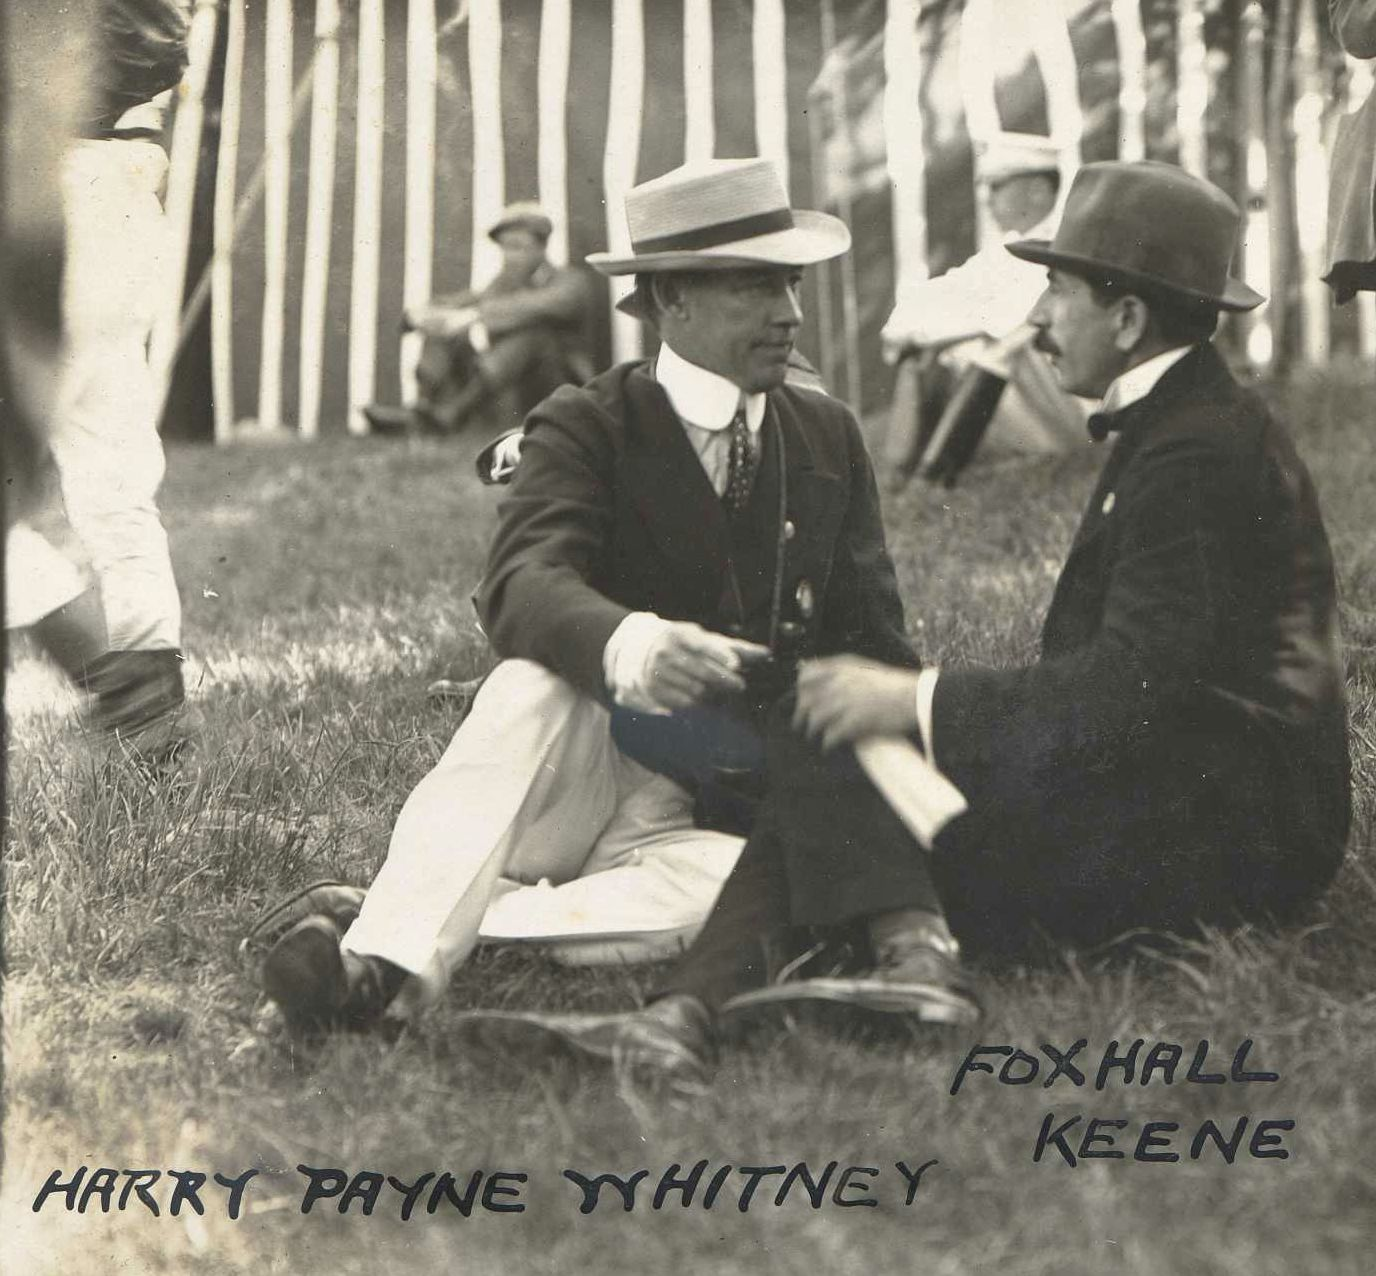 Harry Payne Whitney and Foxhall Keene in 1908 (C. C. Cook/Museum Collection)